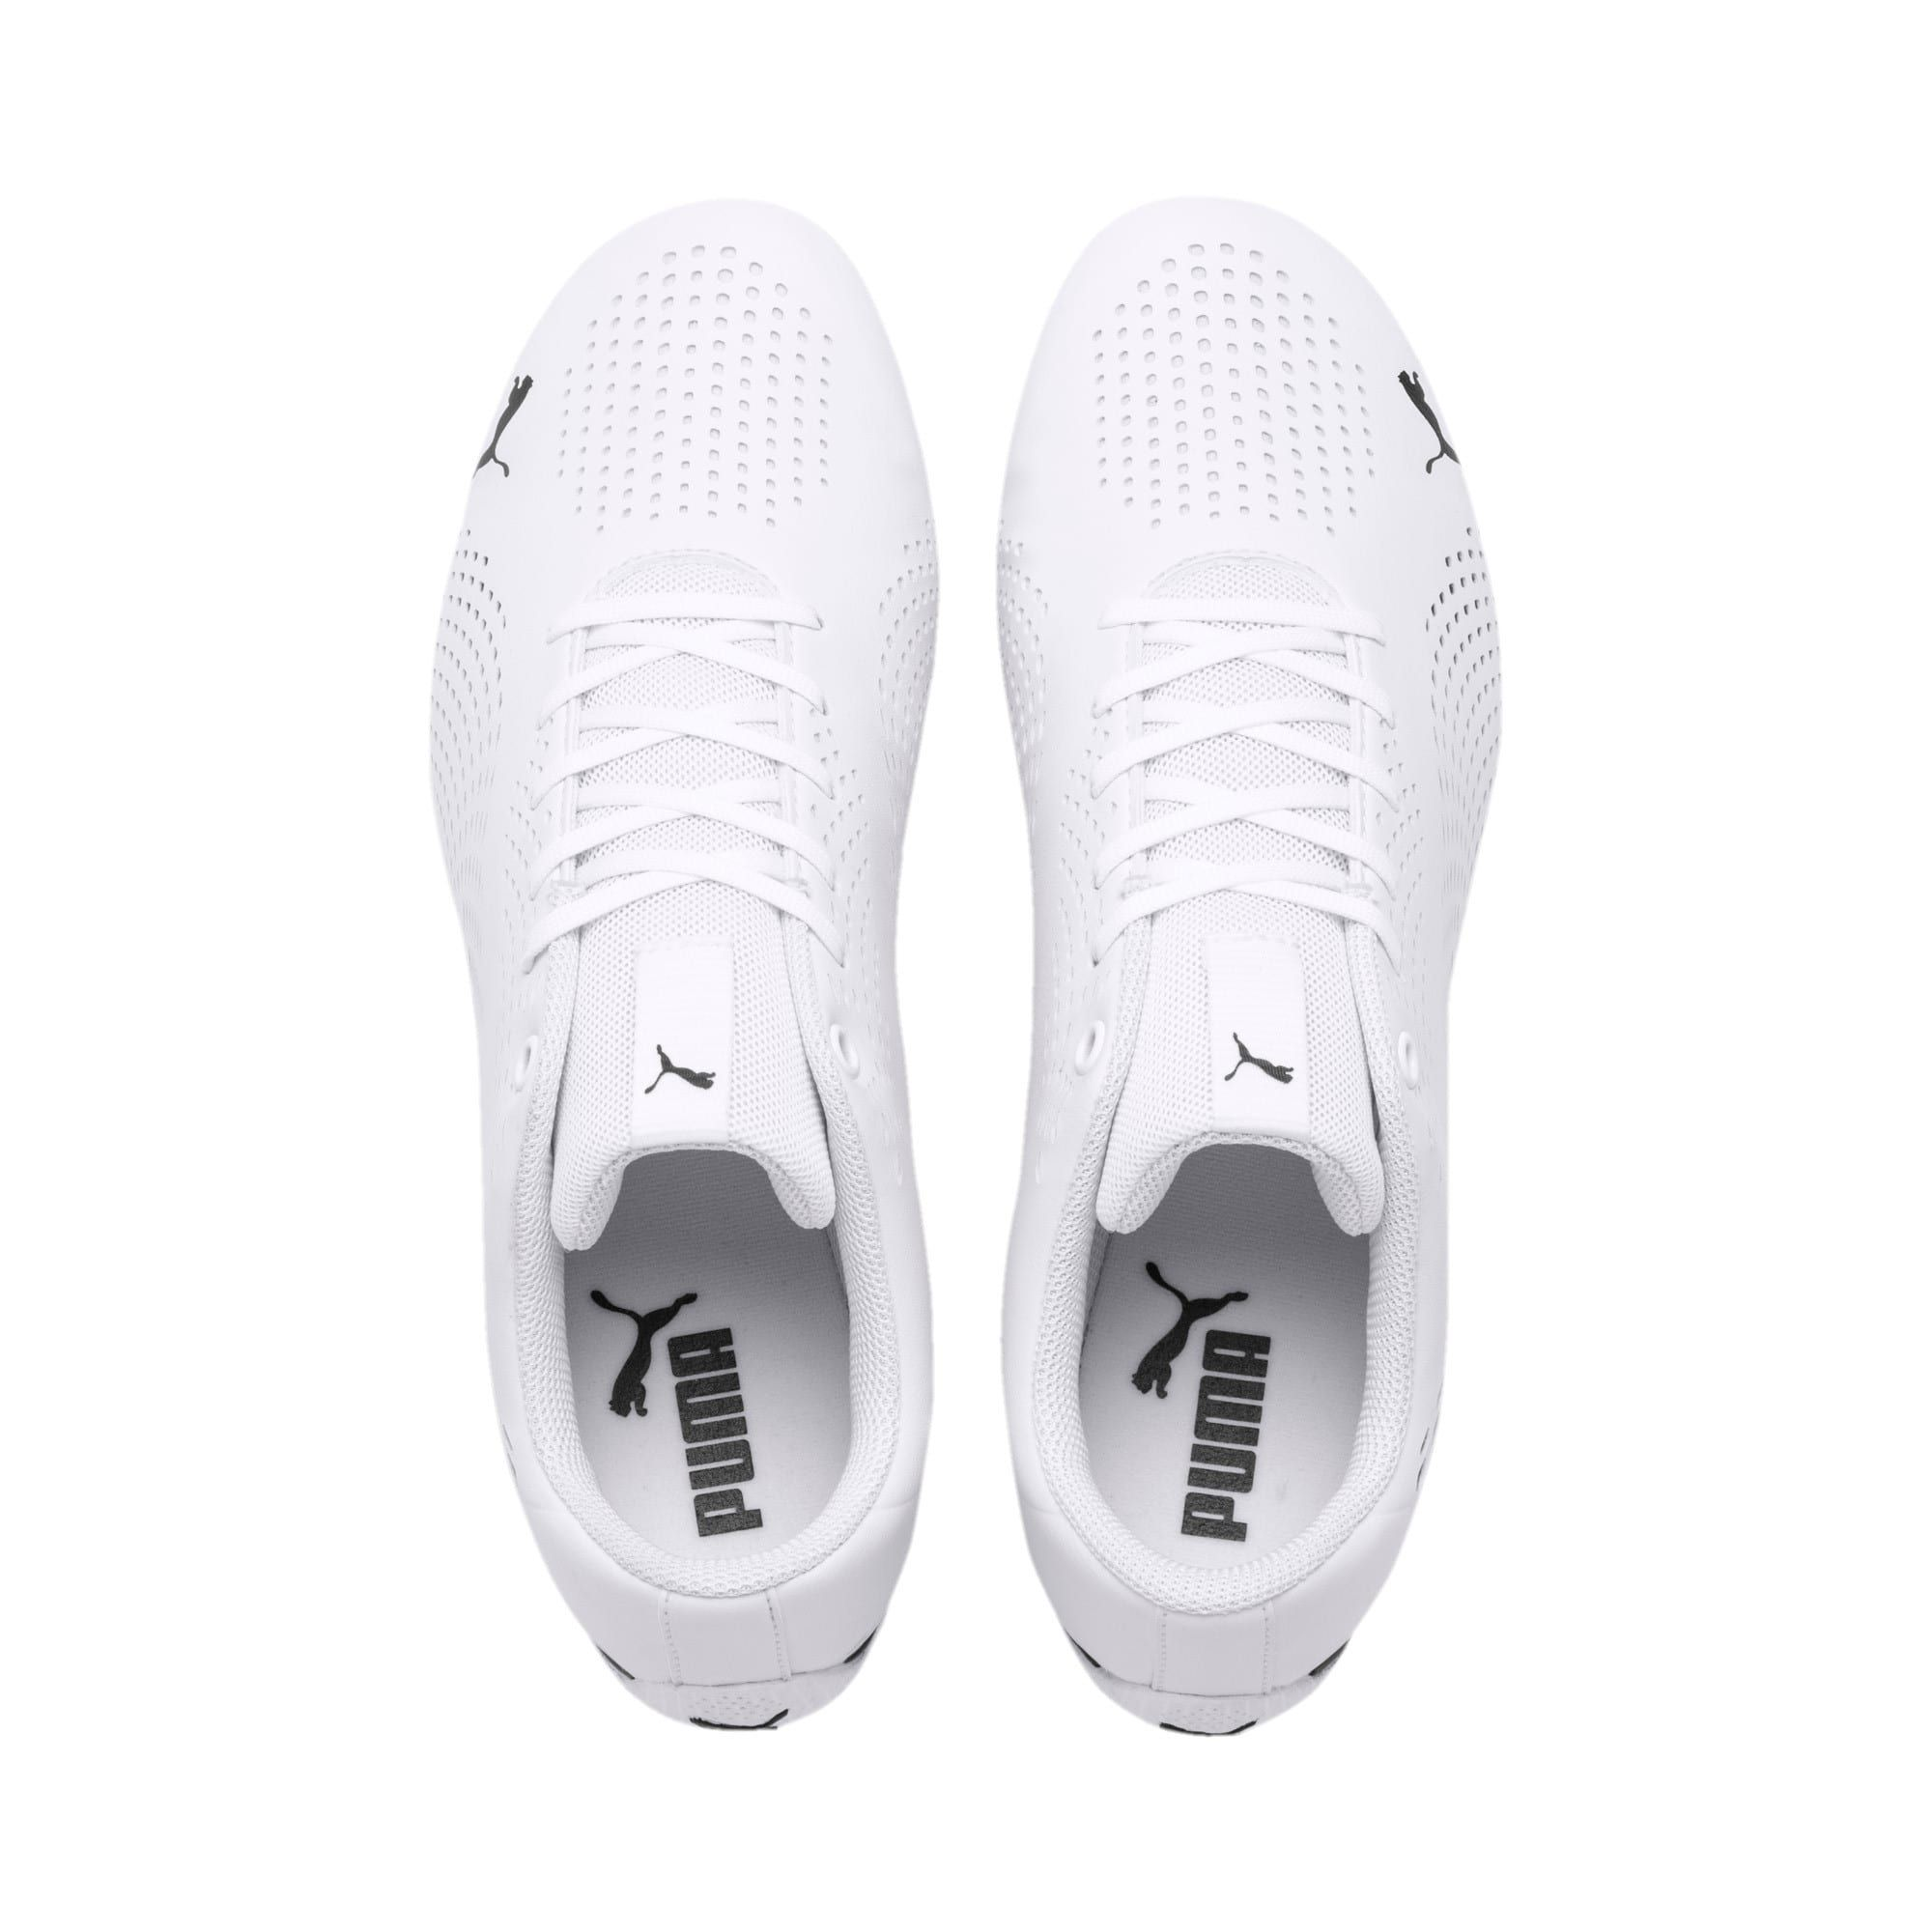 Ferrari Drift Cat 5 Ultra II Trainers | Puma White-Puma Black | PUMA Motorsport | PUMA United Kingdom